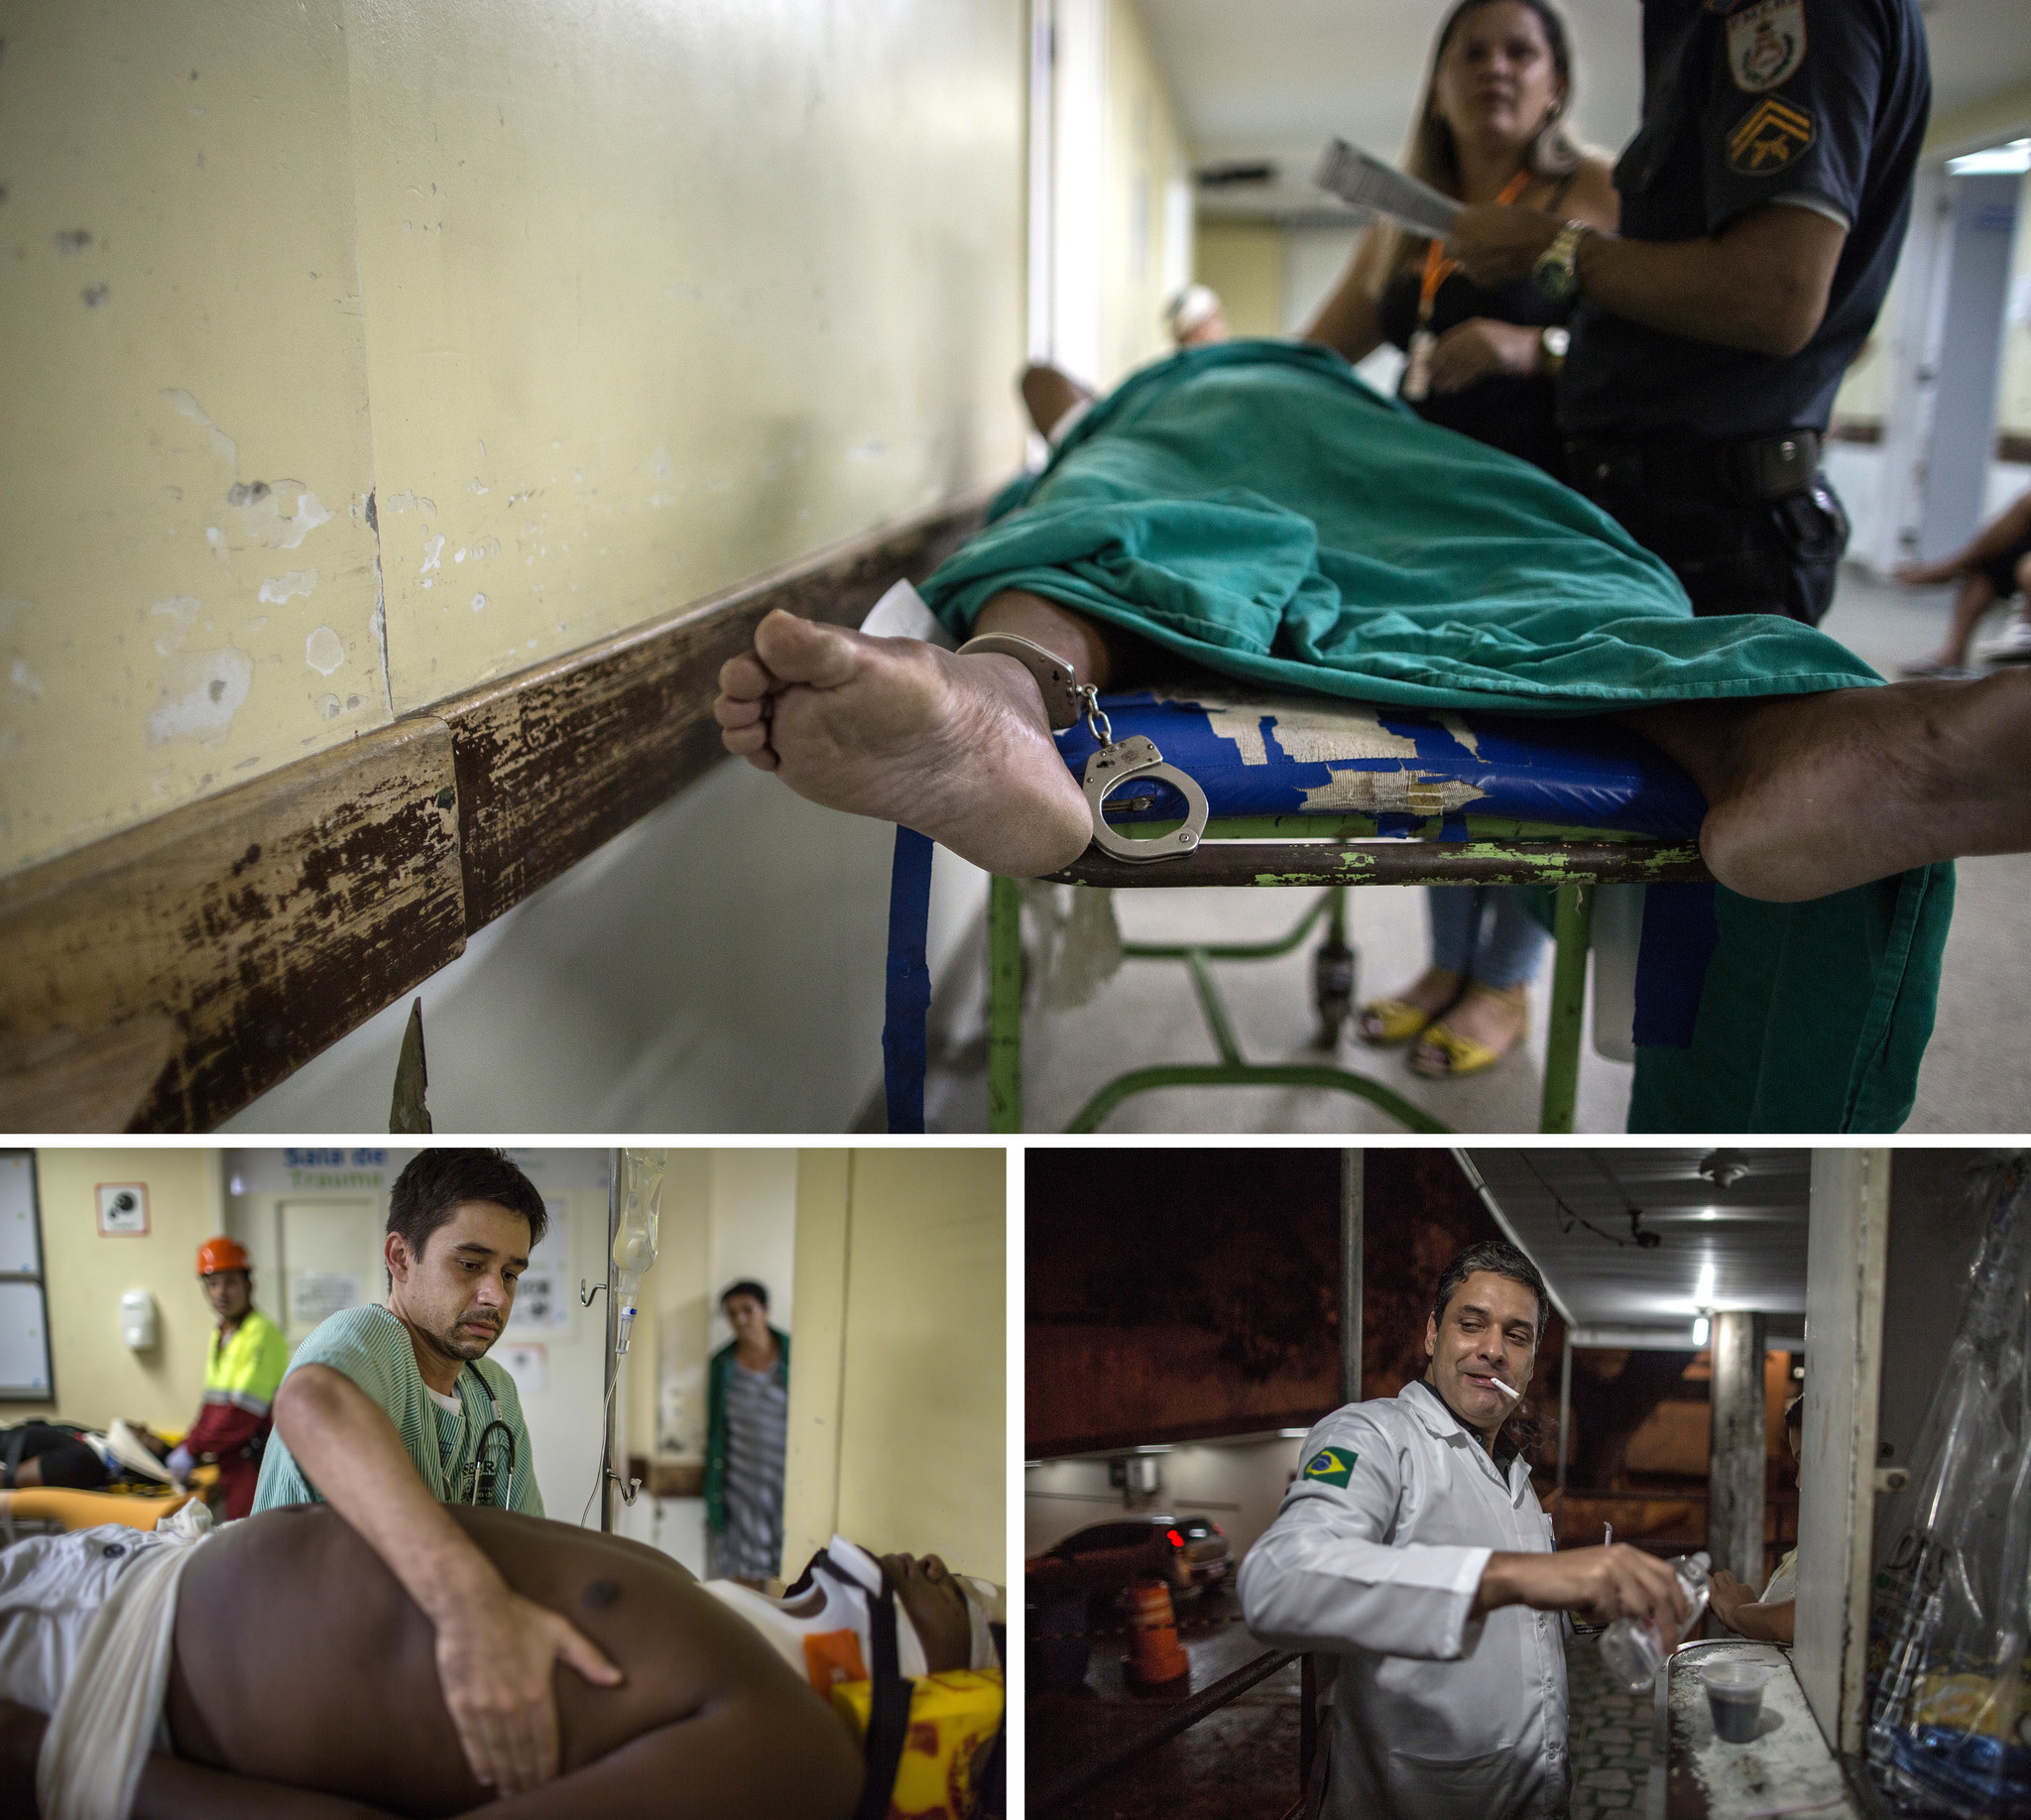 Top, a wounded man who was detained by authorities awaits medical treatment at the hospital. Left, Felipe Saint Clai